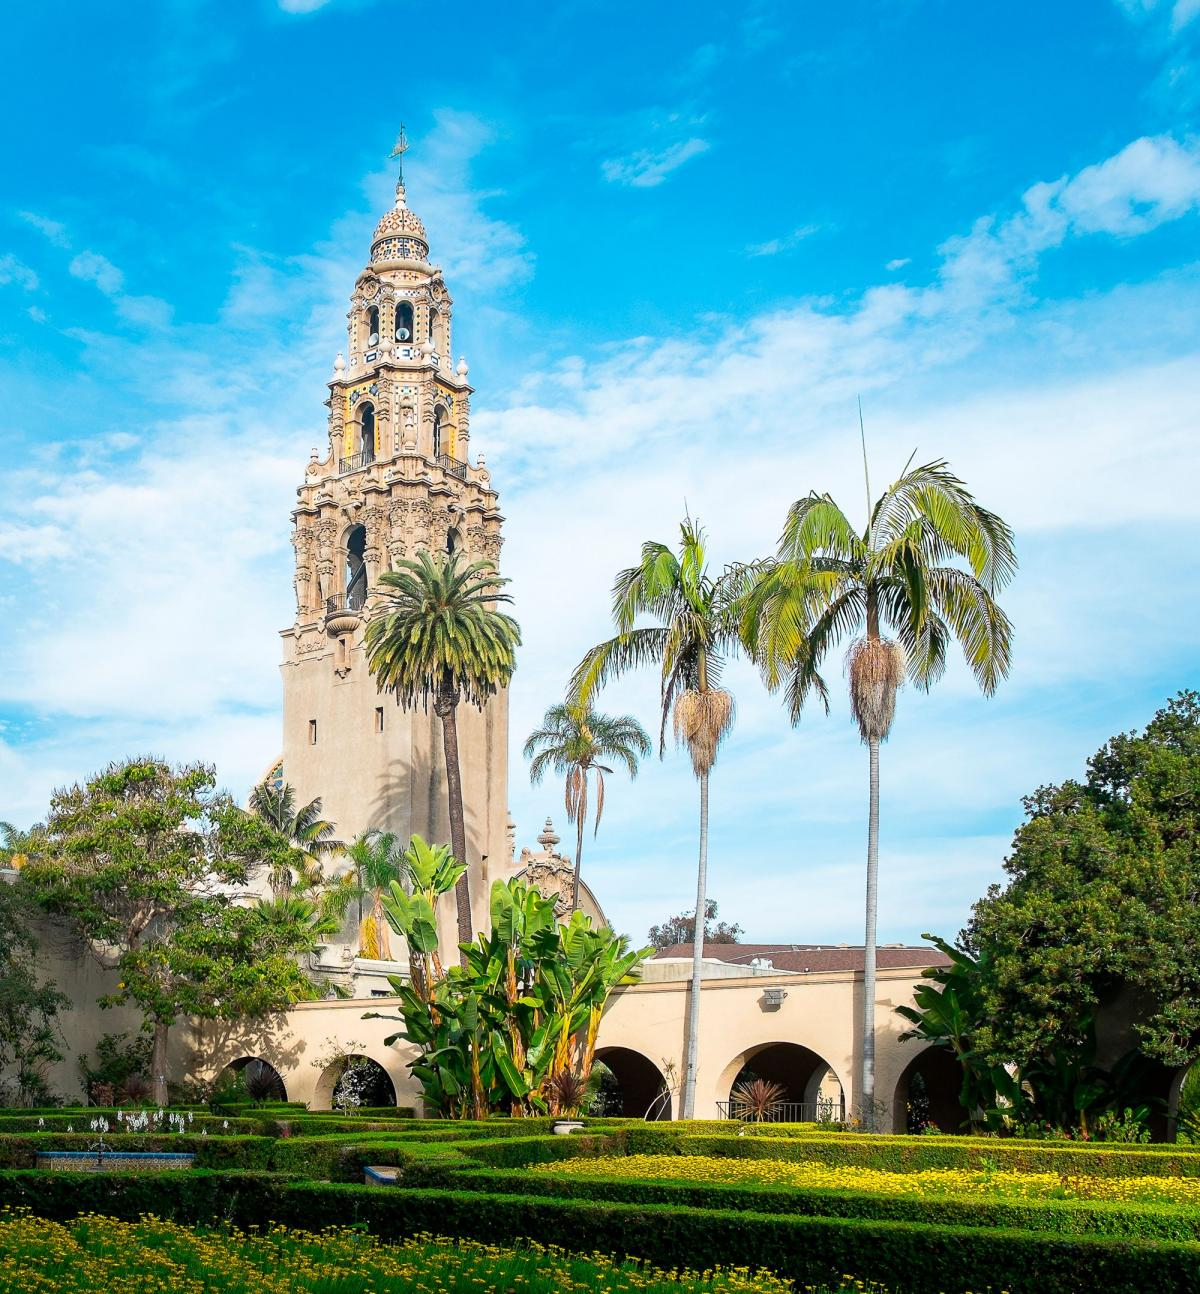 California Tower - Balboa Park, San Diego